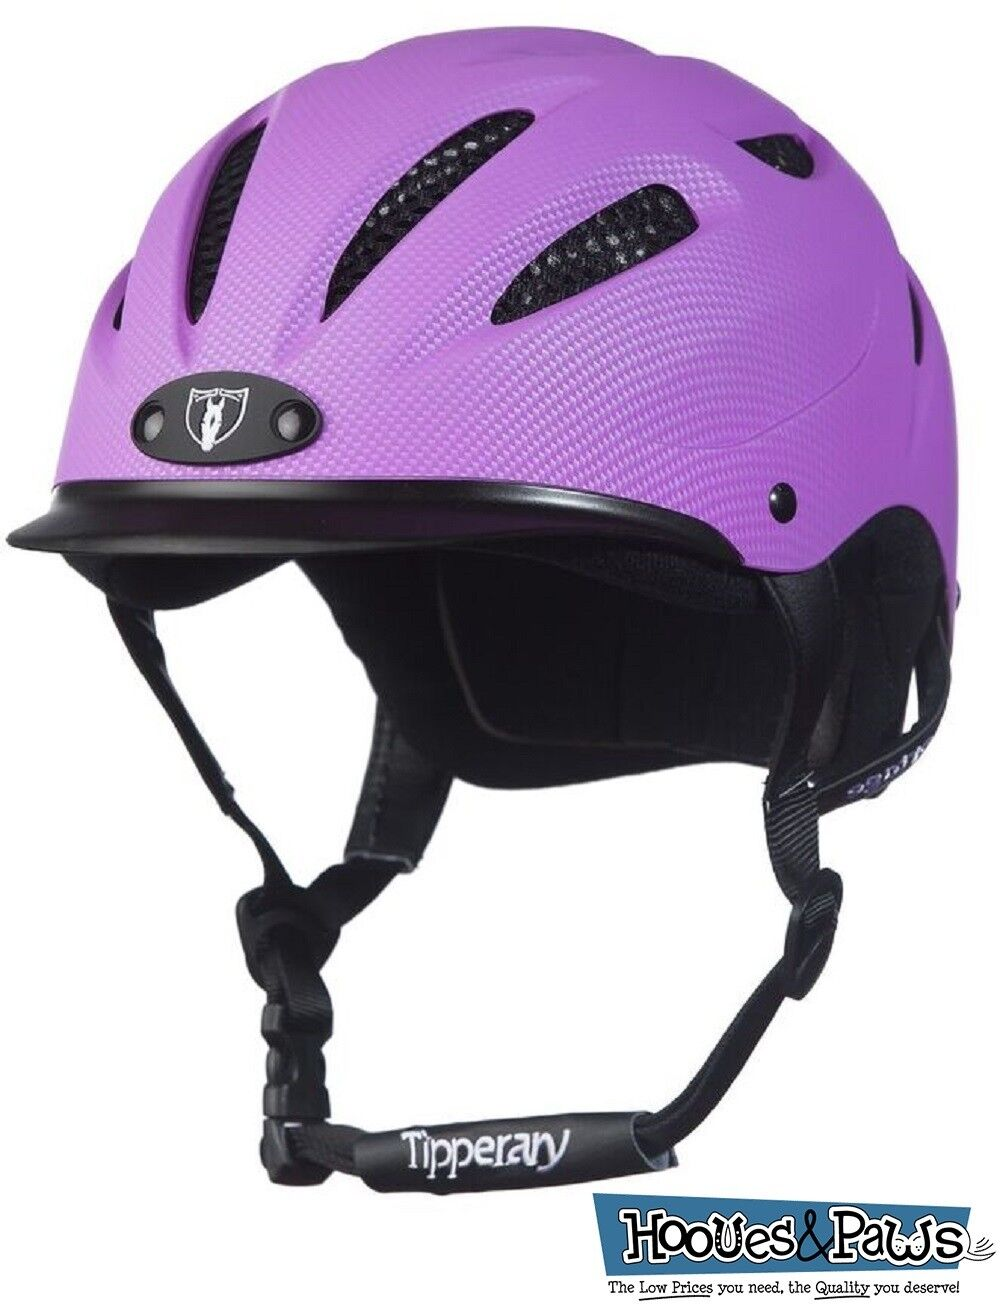 Tipperary Sportage Western Riding Helmet Low Profile Horse Safety viola